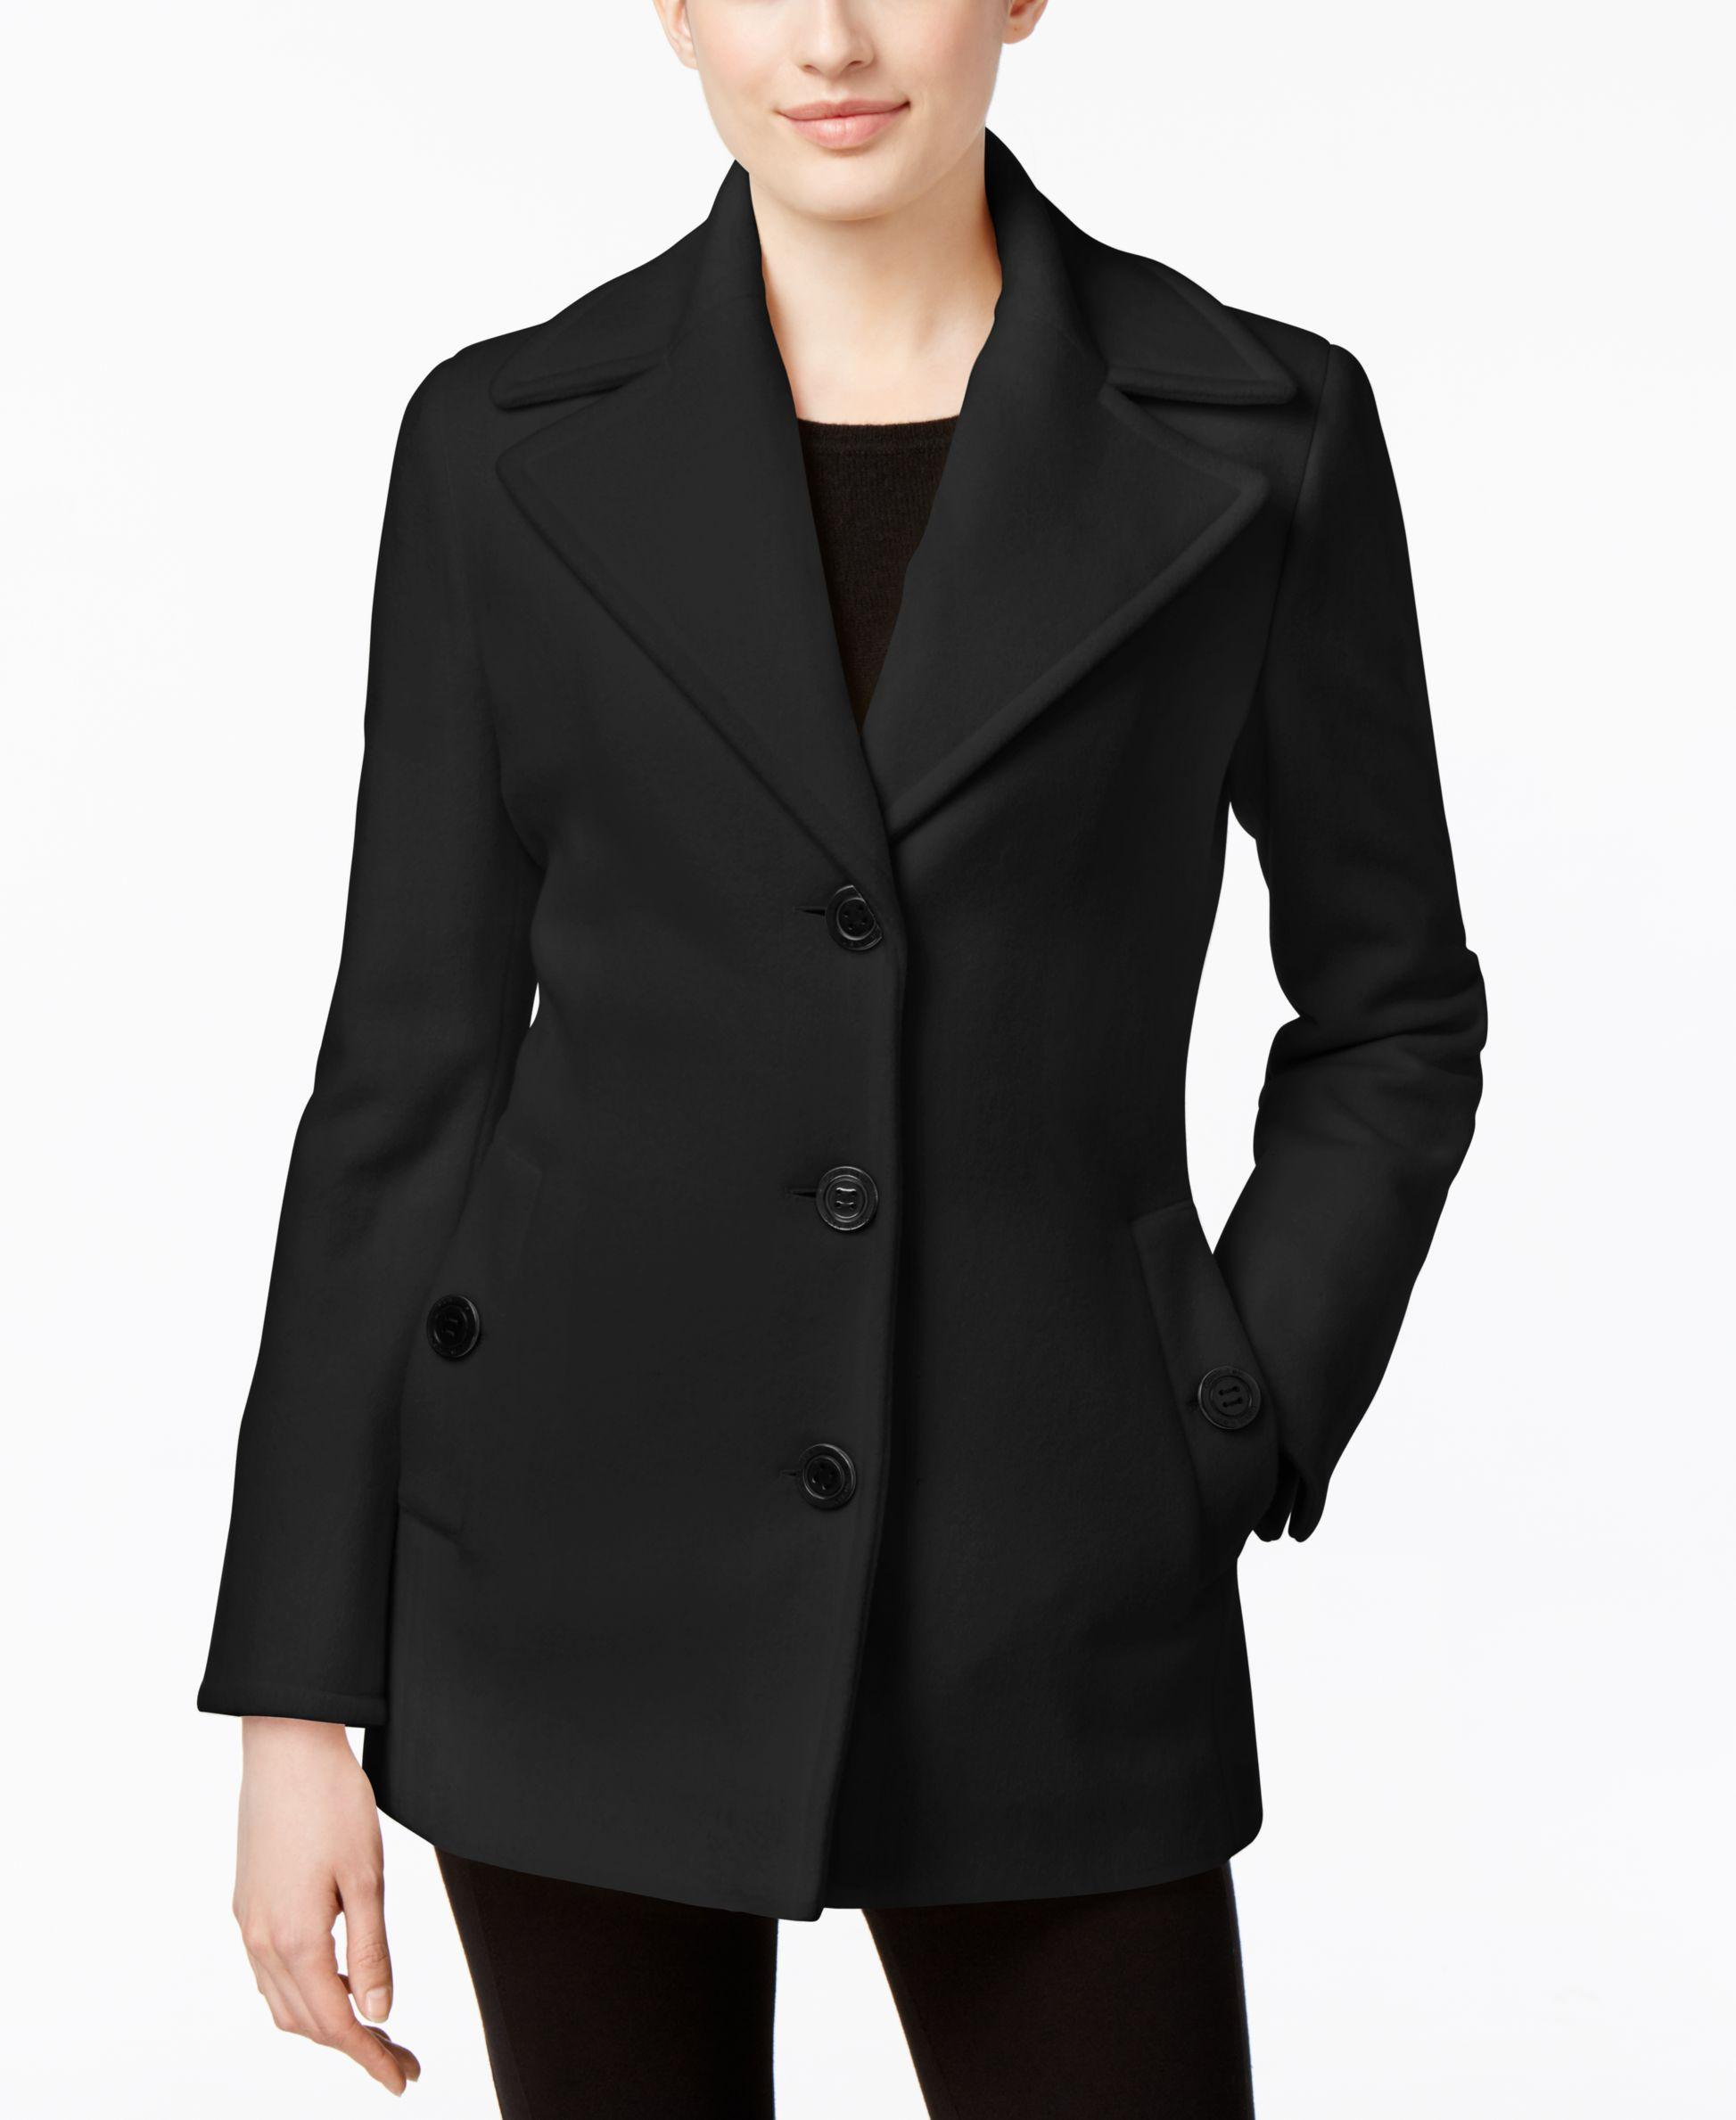 black single women in cashmere The threshold amount must be reached in a single transaction and promotional code  //wwwralphlaurencom/women-clothing-sweaters/cashmere-shawl-cardigan.